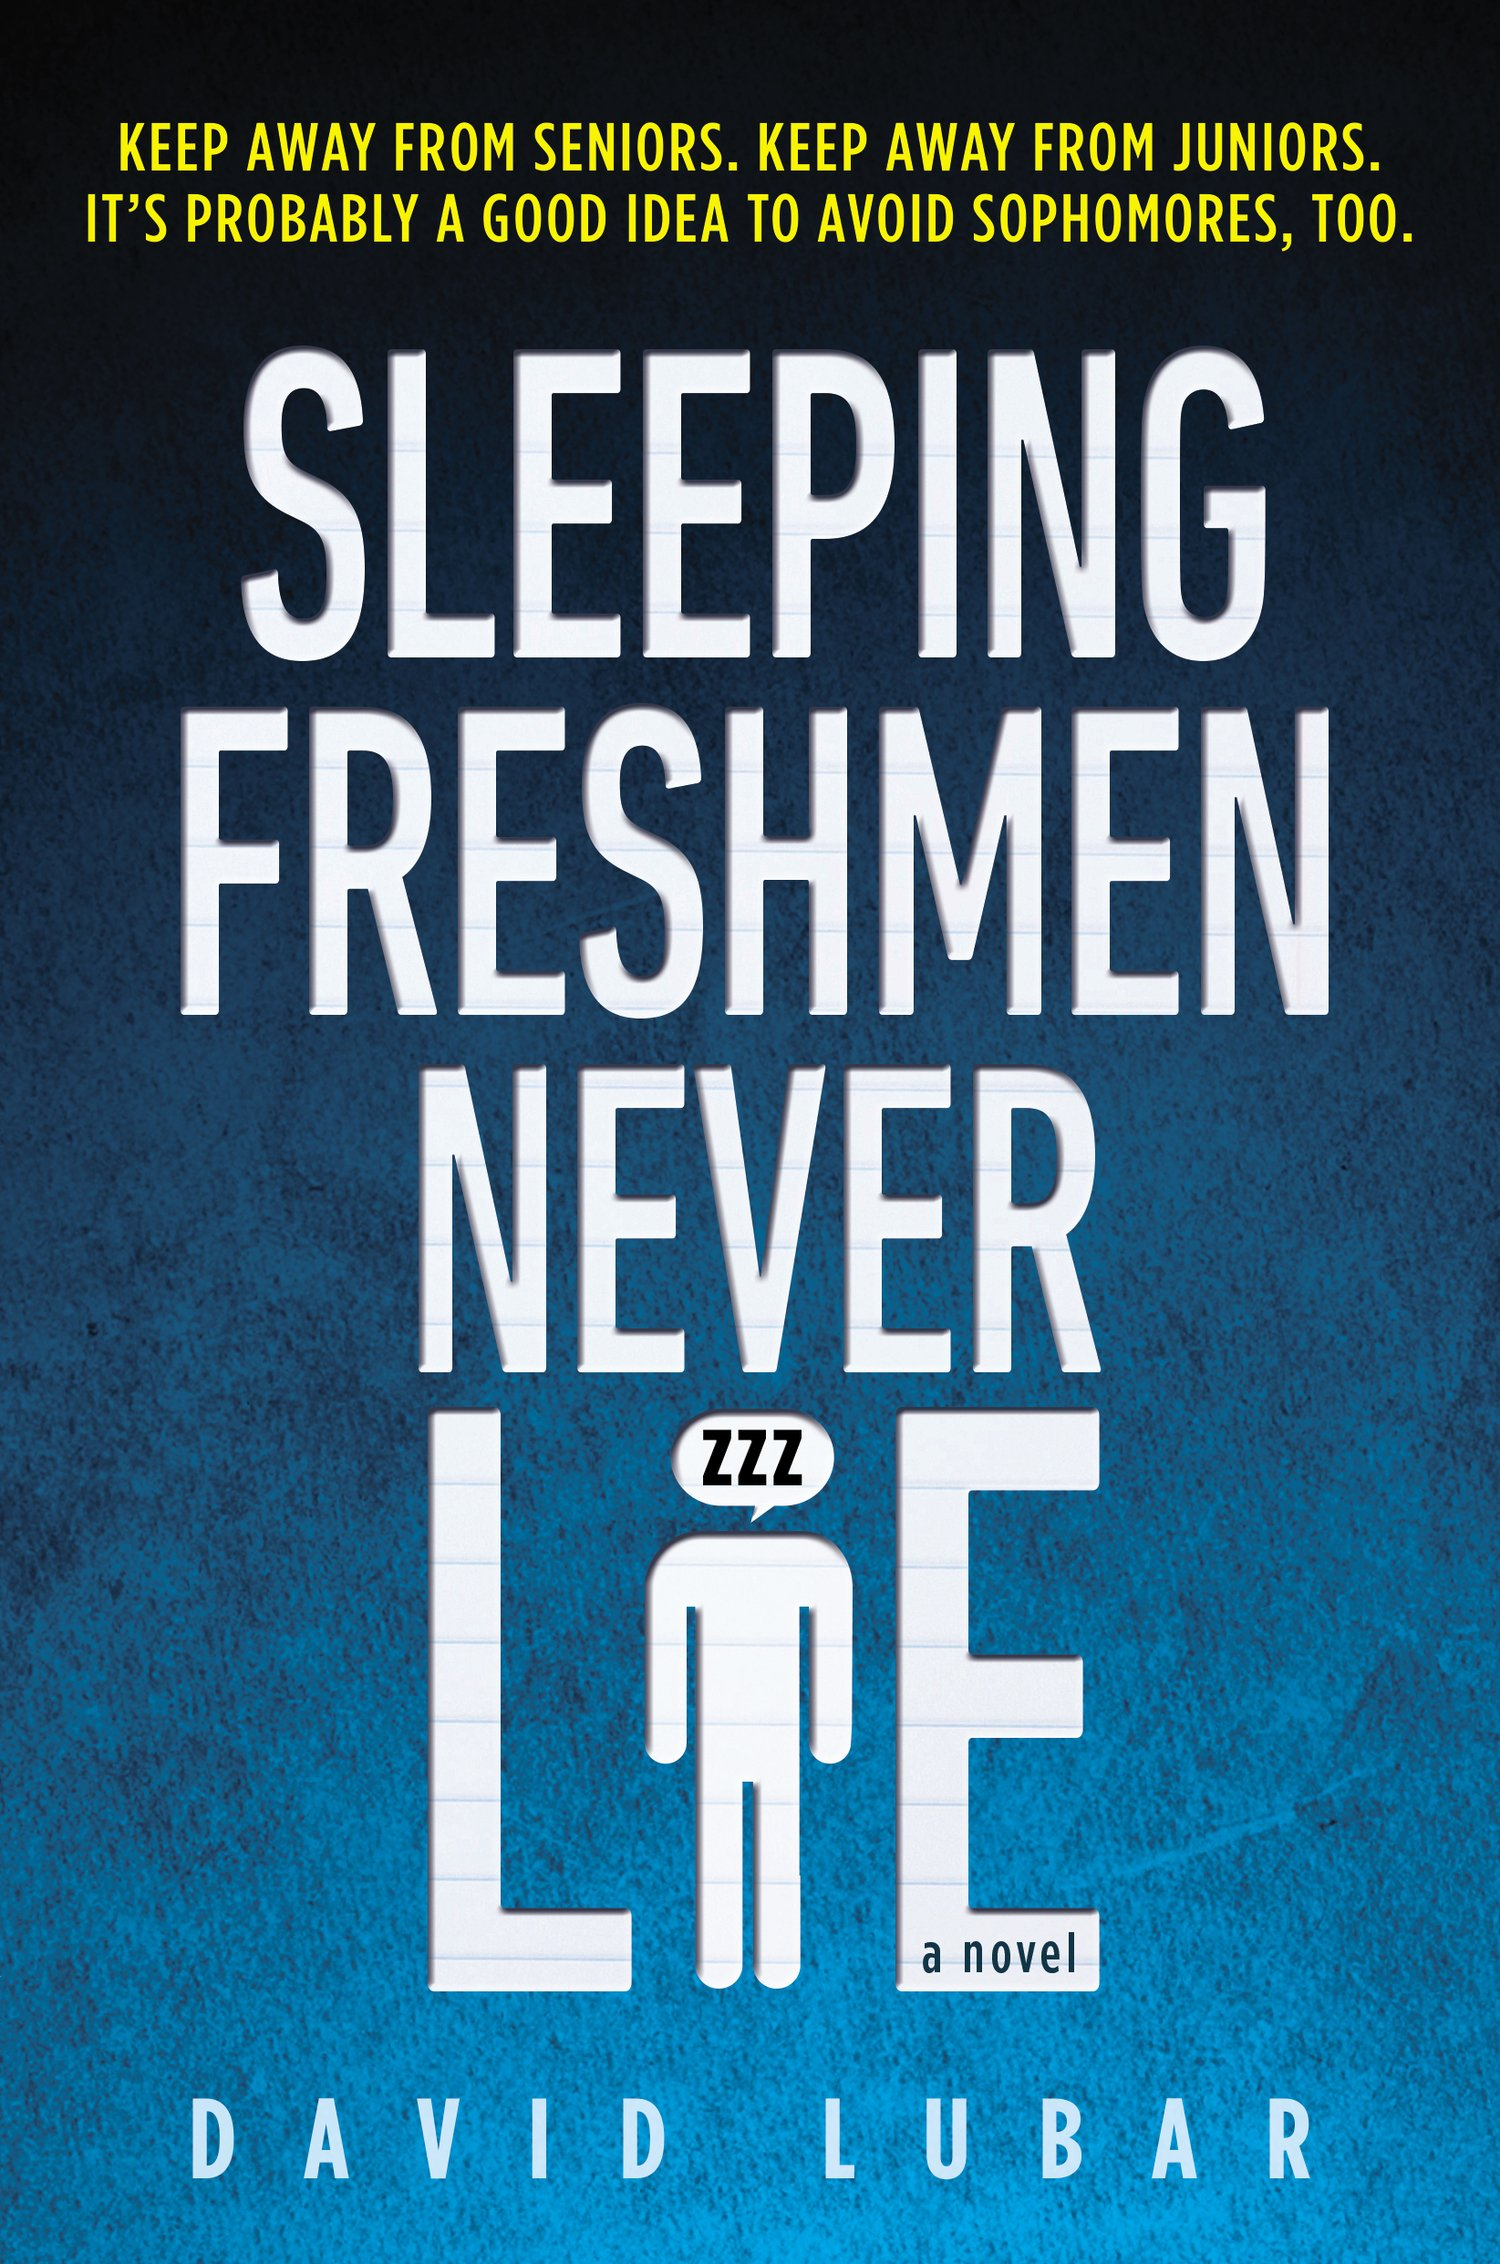 sleepinf freshman never lie wesley essay Get sleeping freshmen never lie from amazoncom this study guide consists of approximately 36 pages of chapter summaries, quotes, character analysis, themes, and more - everything you need to sharpen your knowledge of sleeping freshmen never lie.